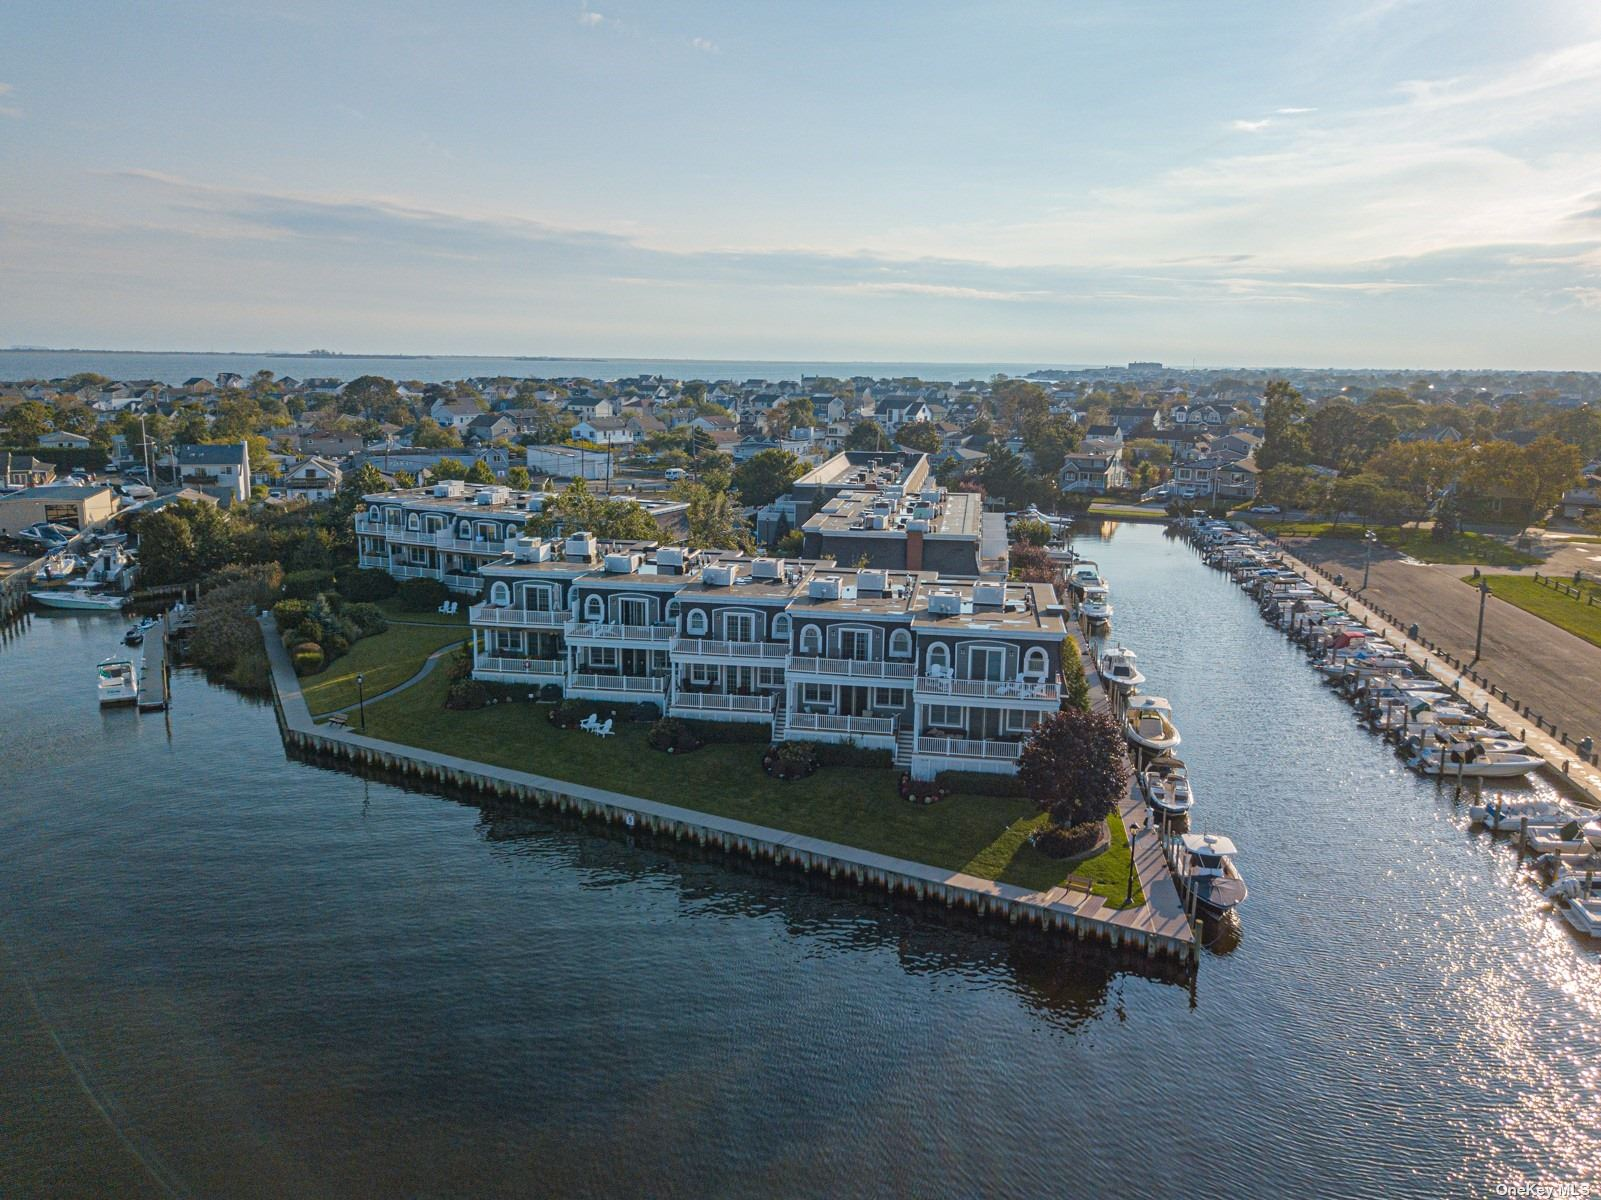 Gorgeous Waterfront Townhome With Sparkling Views of The Great South Bay, 3 Bedroom, 3.5 Bath Home, Beautiful Eat-In-Kitchen Leading Into A Bright And Open Den With A Fireplace And Plenty of Space To Entertain. Off The Den Are French Doors Leading Out To A Deck Where You Can Soak Up The Views of the Bay. Similar French Doors Lead Out of The Master Bedroom Onto A Private Deck Where You Can Enjoy Your Morning Coffee With The Sunrise.